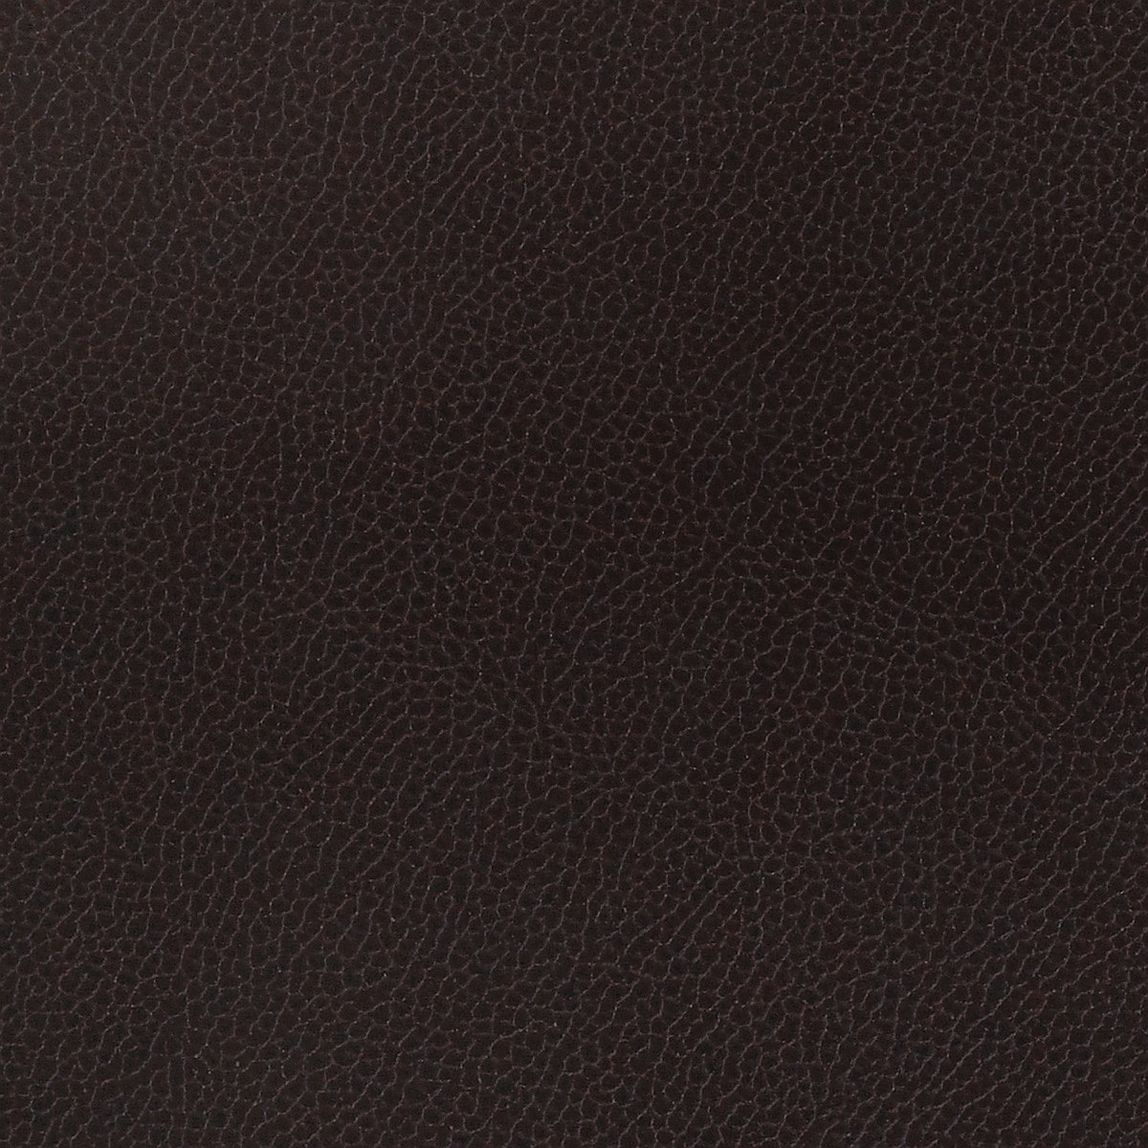 Silica Leather Eclipse Swatch